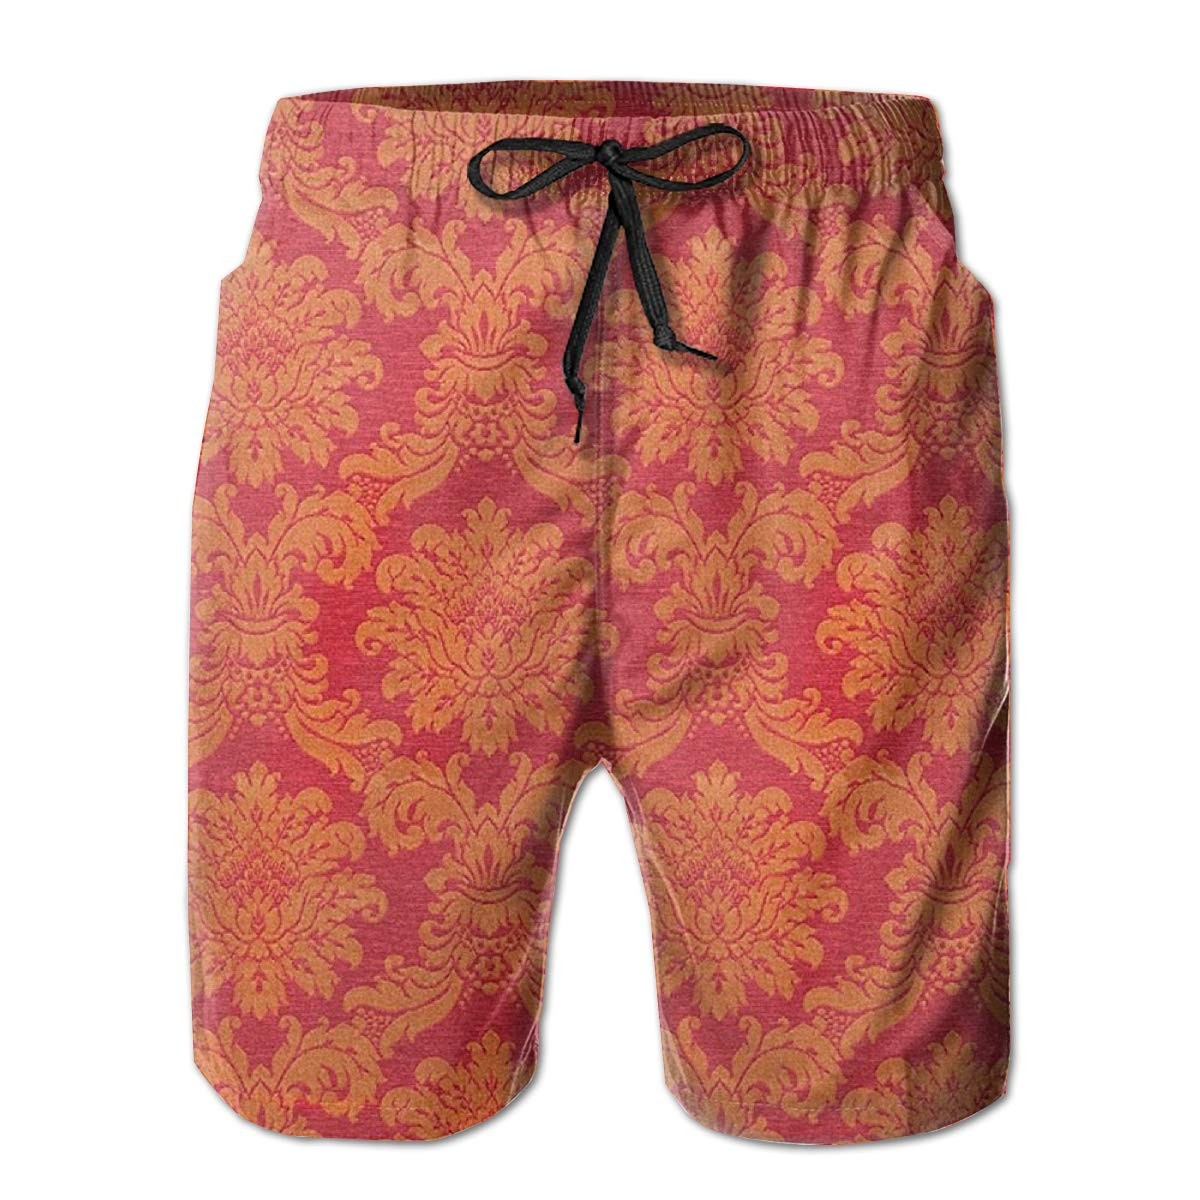 Galaxy Voyage Indian Red Boys Mens Swim Trunks Surf Pants 3D Swimming Trunks Board Shorts for Men